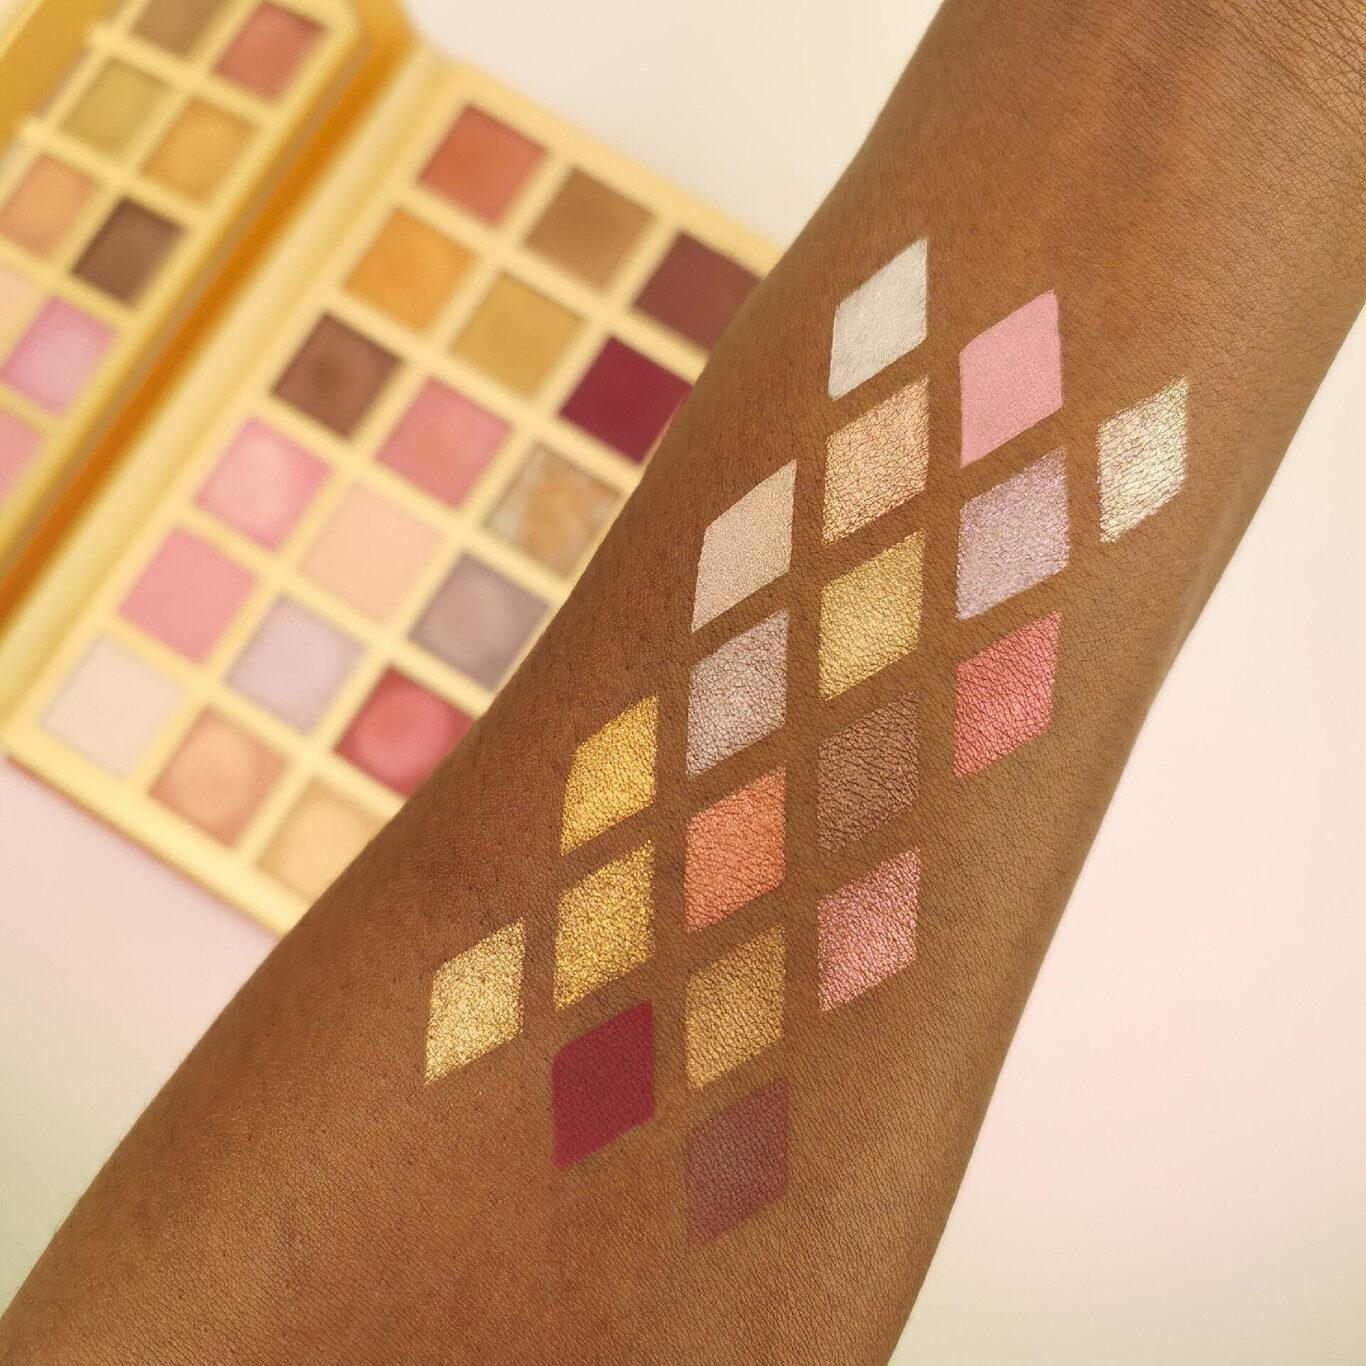 XX Revolution LuXX Eyeshadow Palette Bare LuXX Arm Swatches